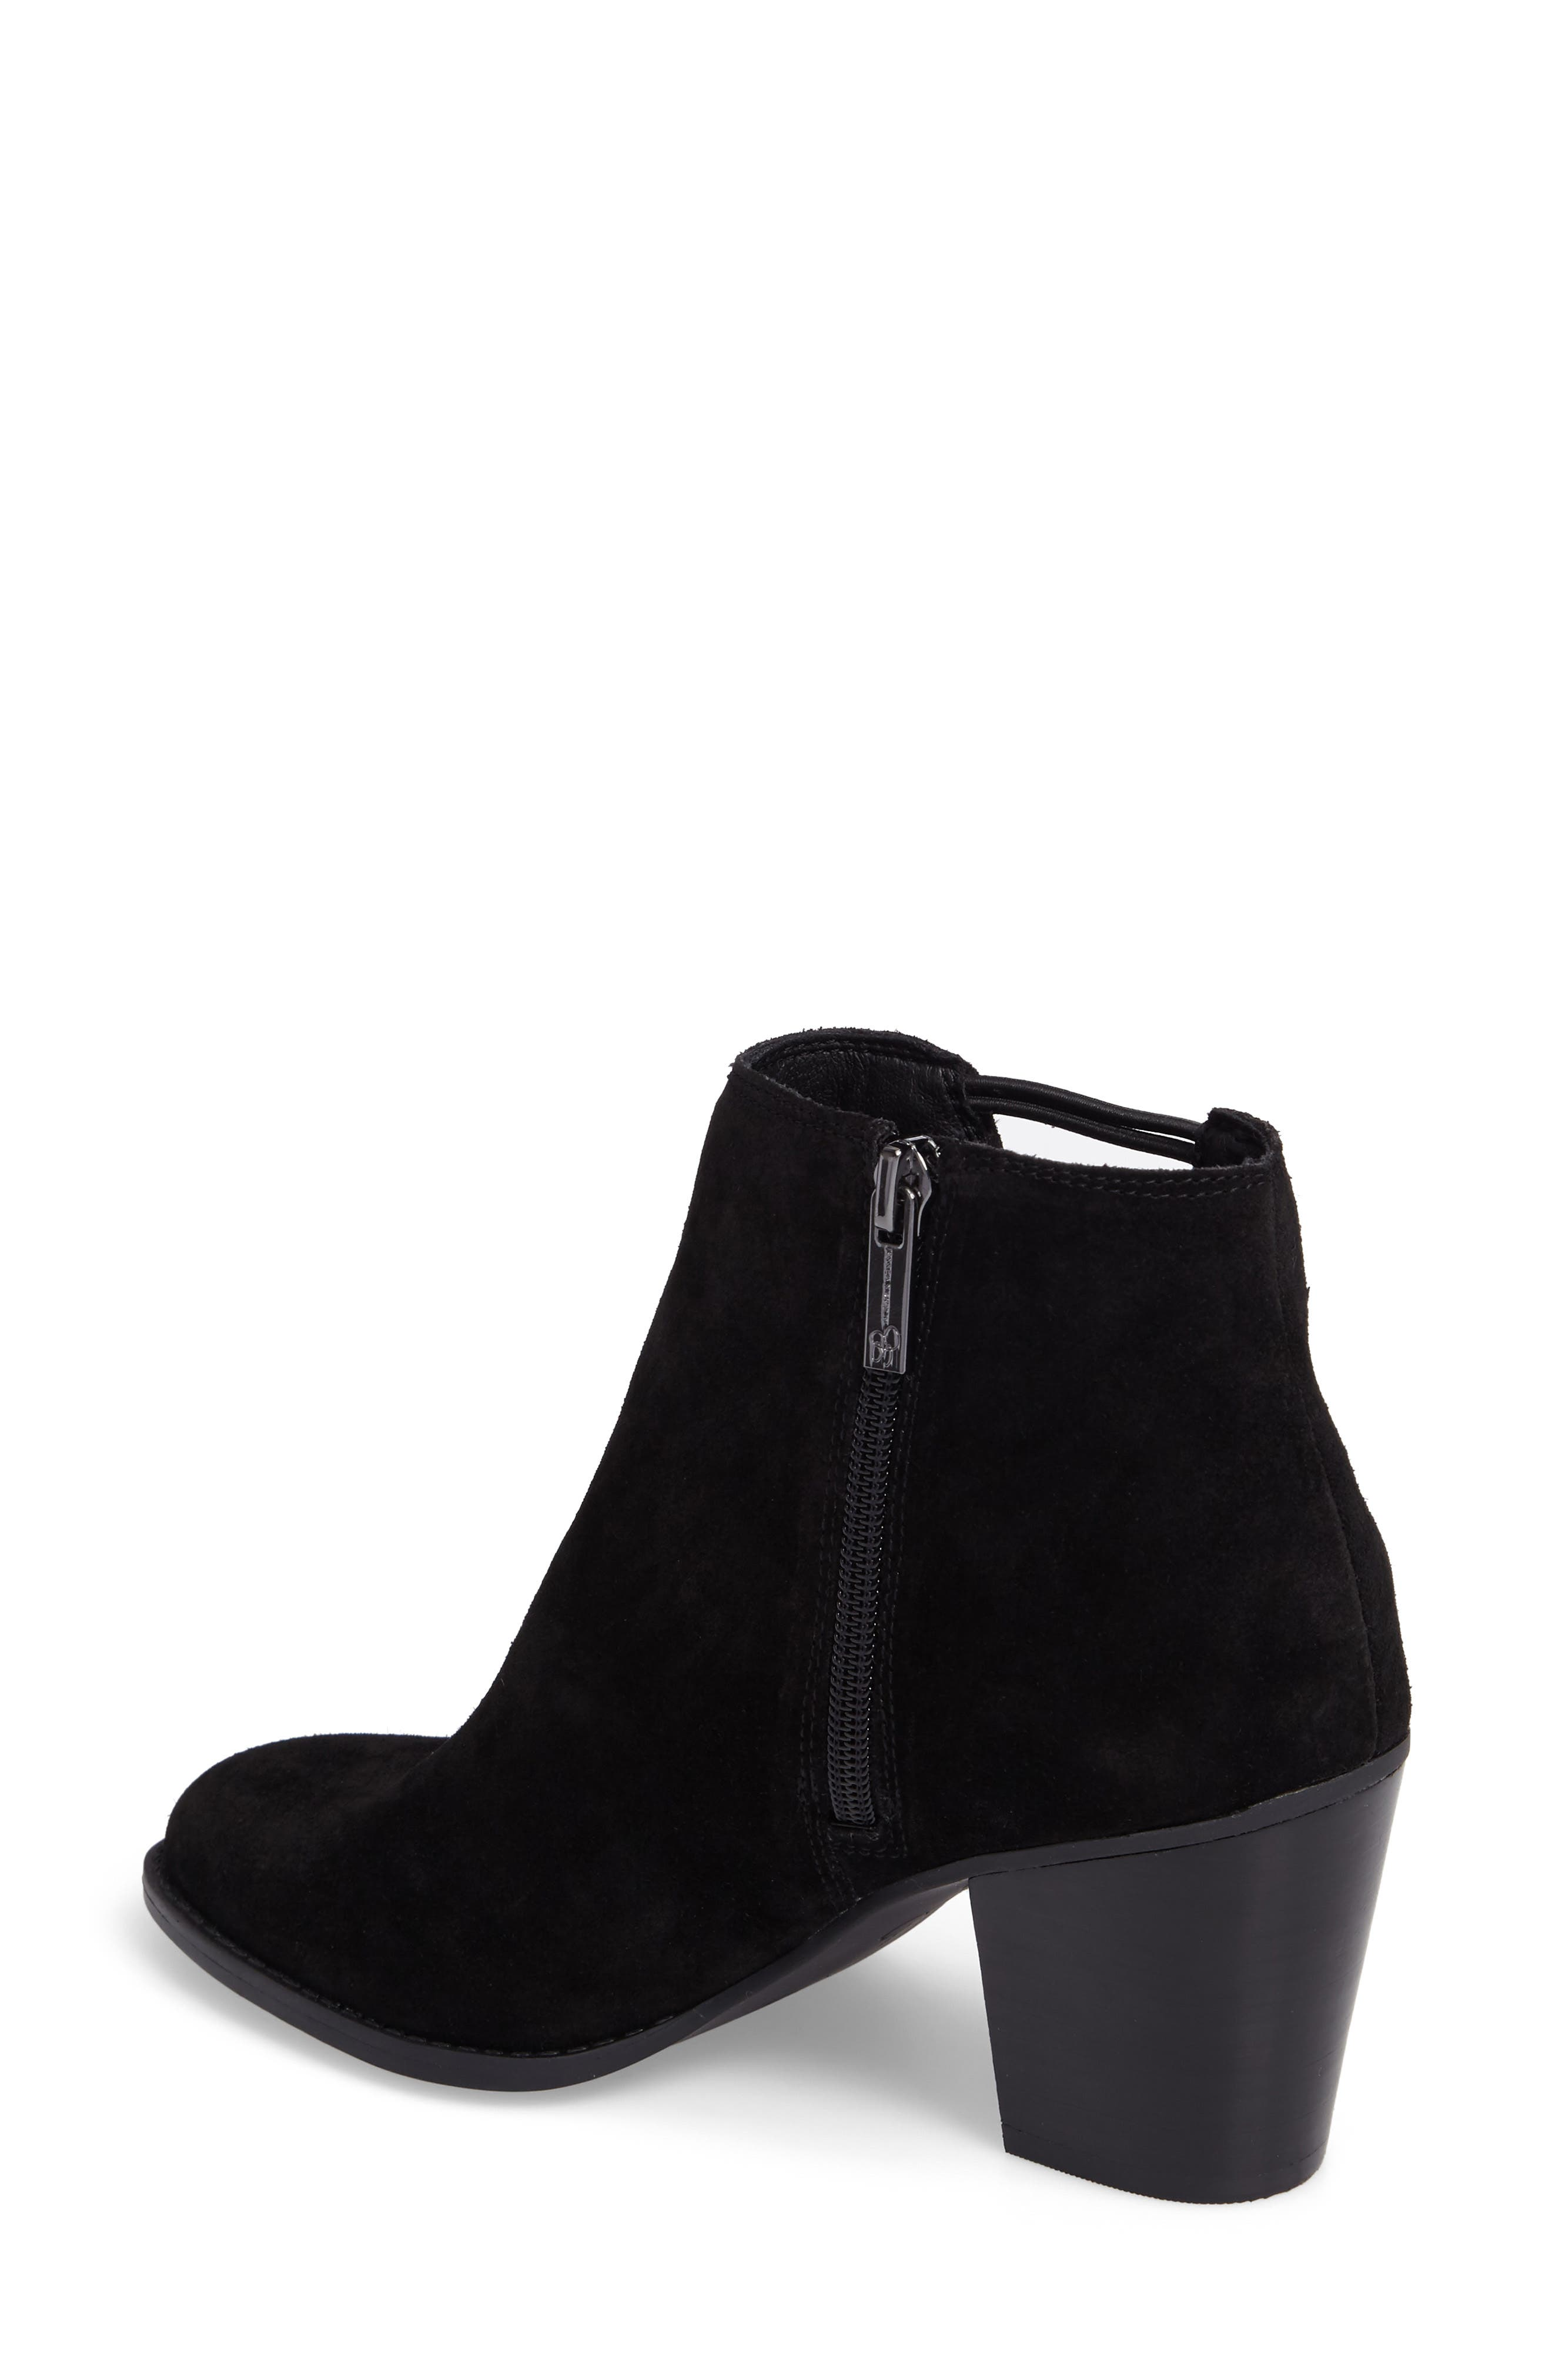 Yasma Bootie,                             Alternate thumbnail 2, color,                             Black Suede